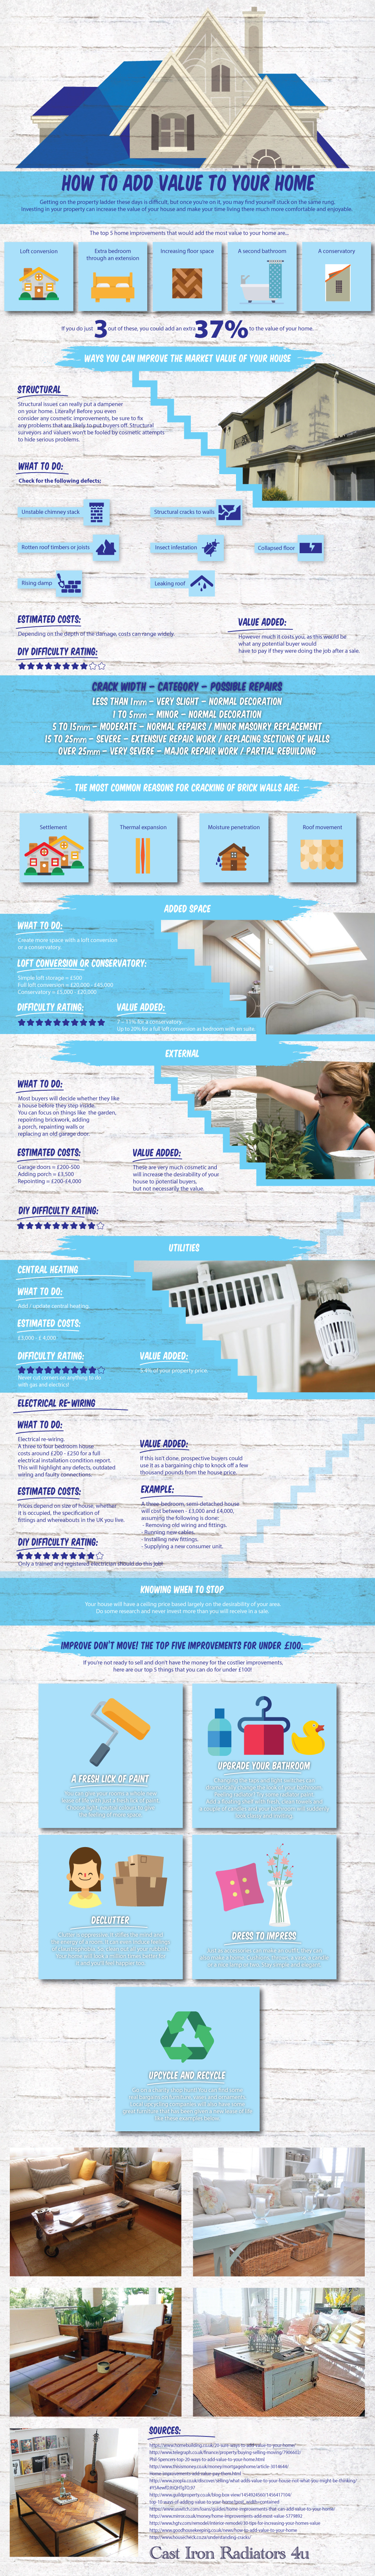 Adding Value To Your Home [Infographic]